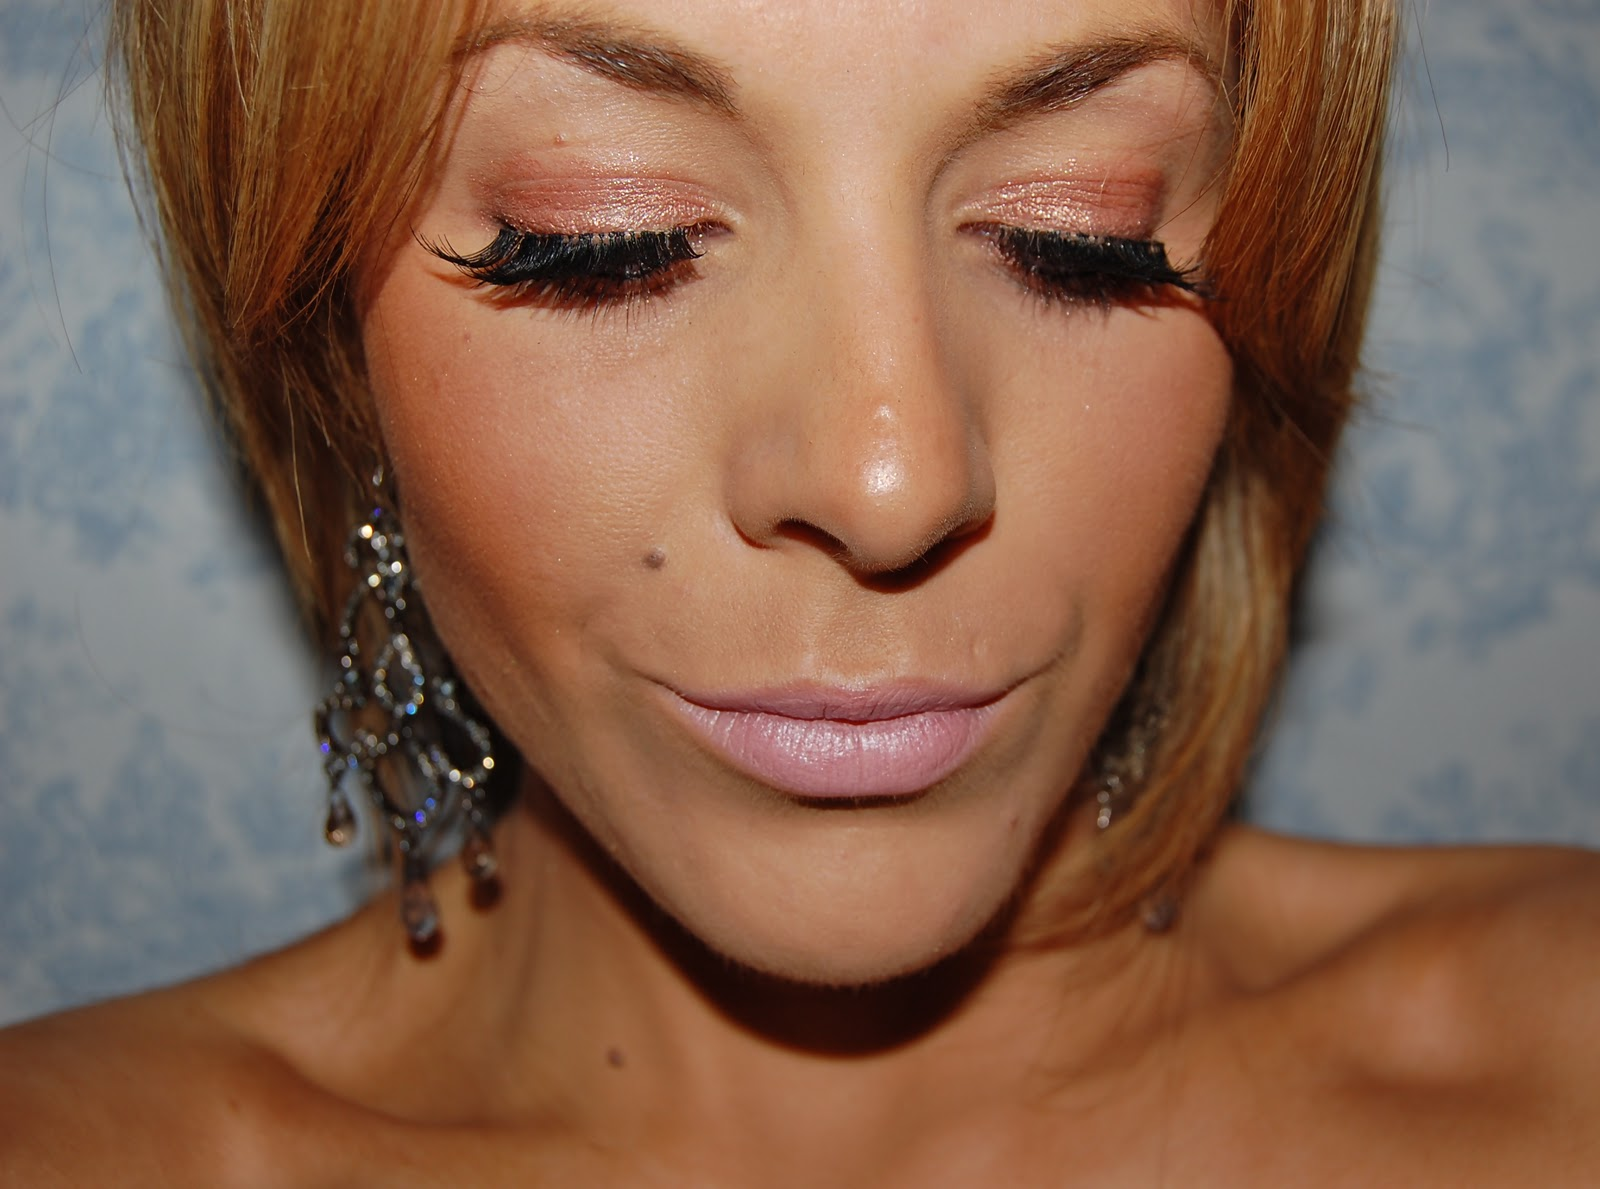 a9006d56be4 Flashing My Lashes - Milly Naomi